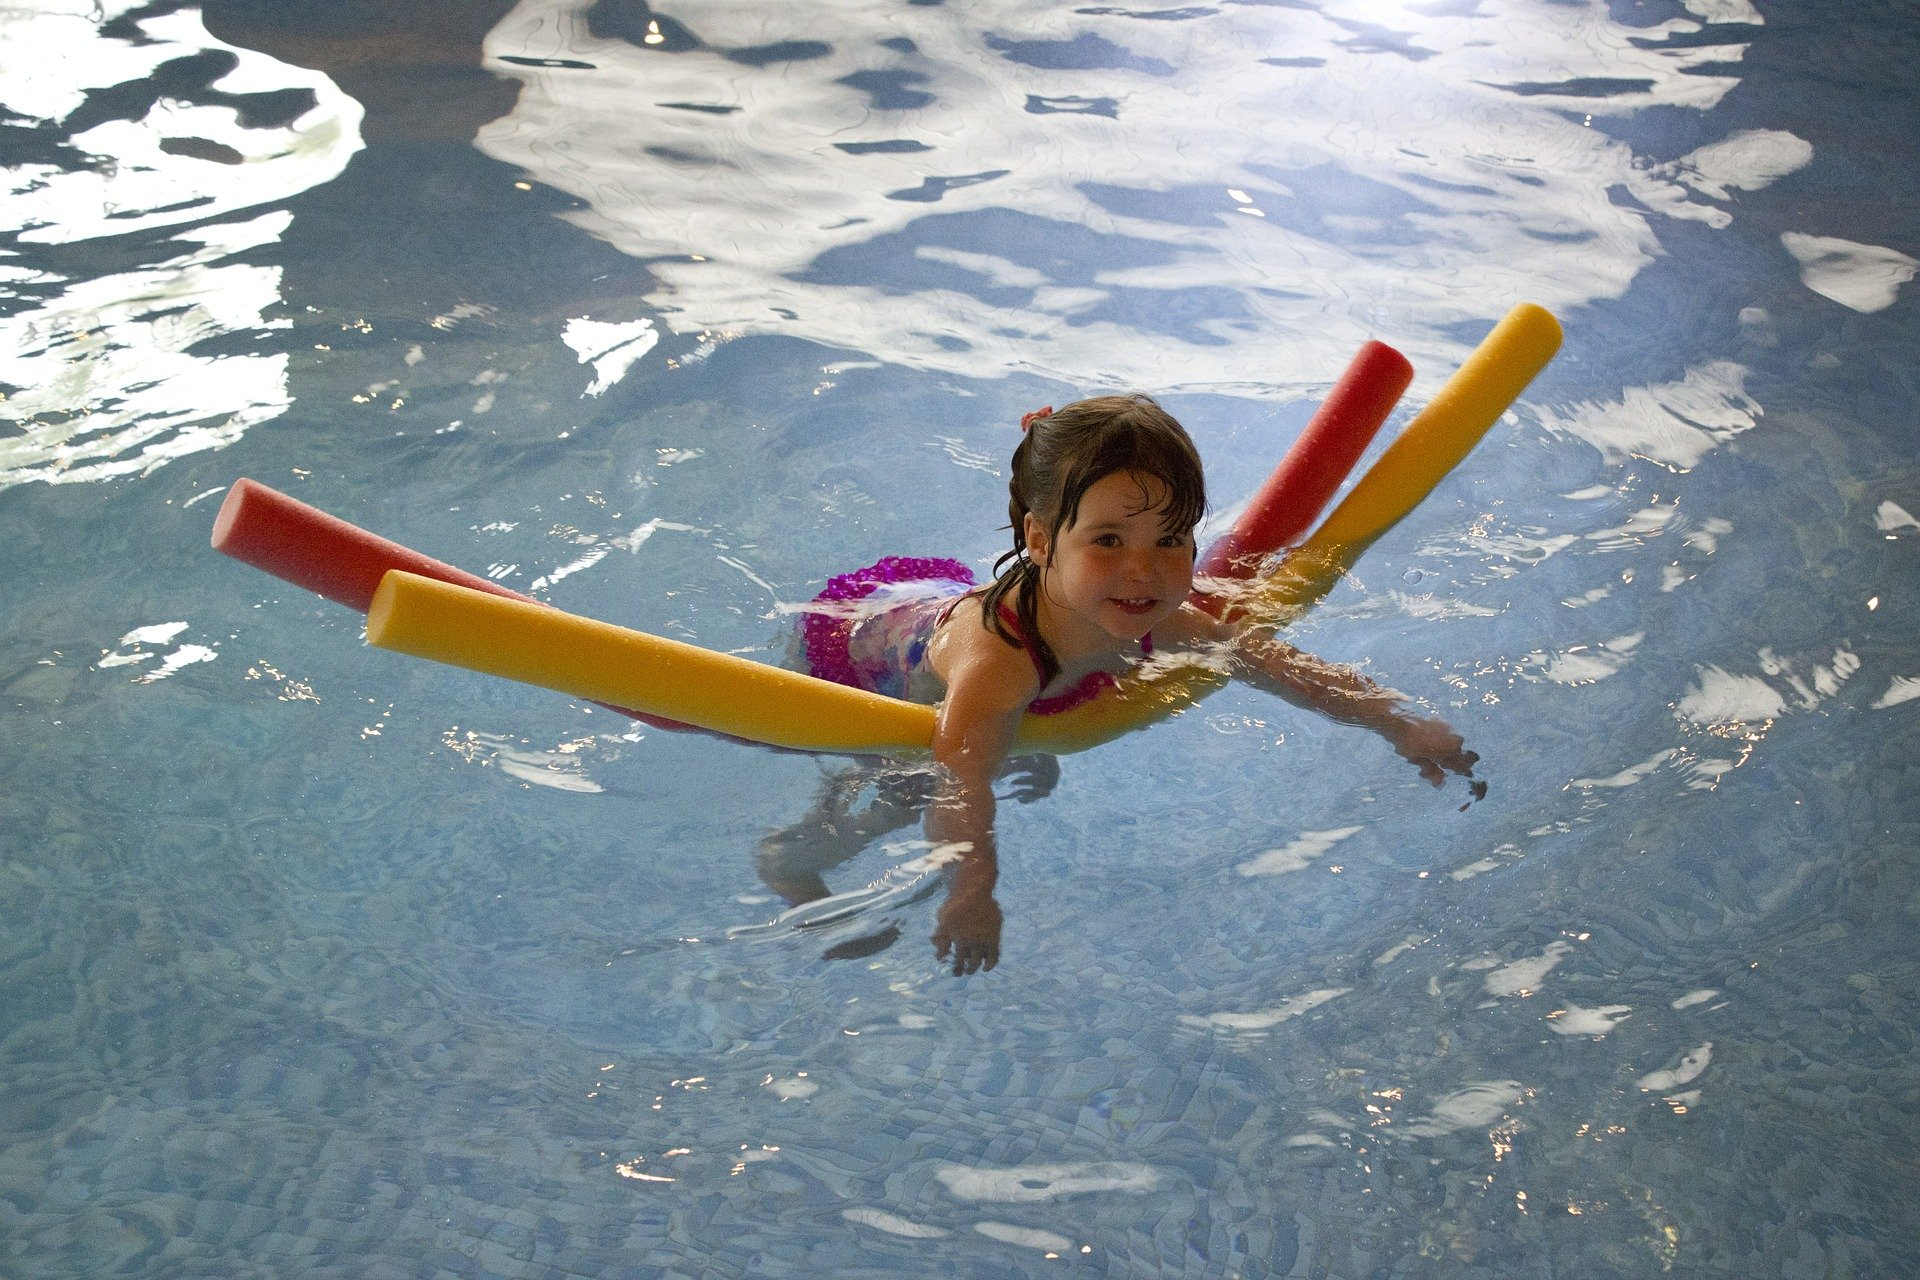 4 Unique Ways to Use A Pool Noodle's featured image